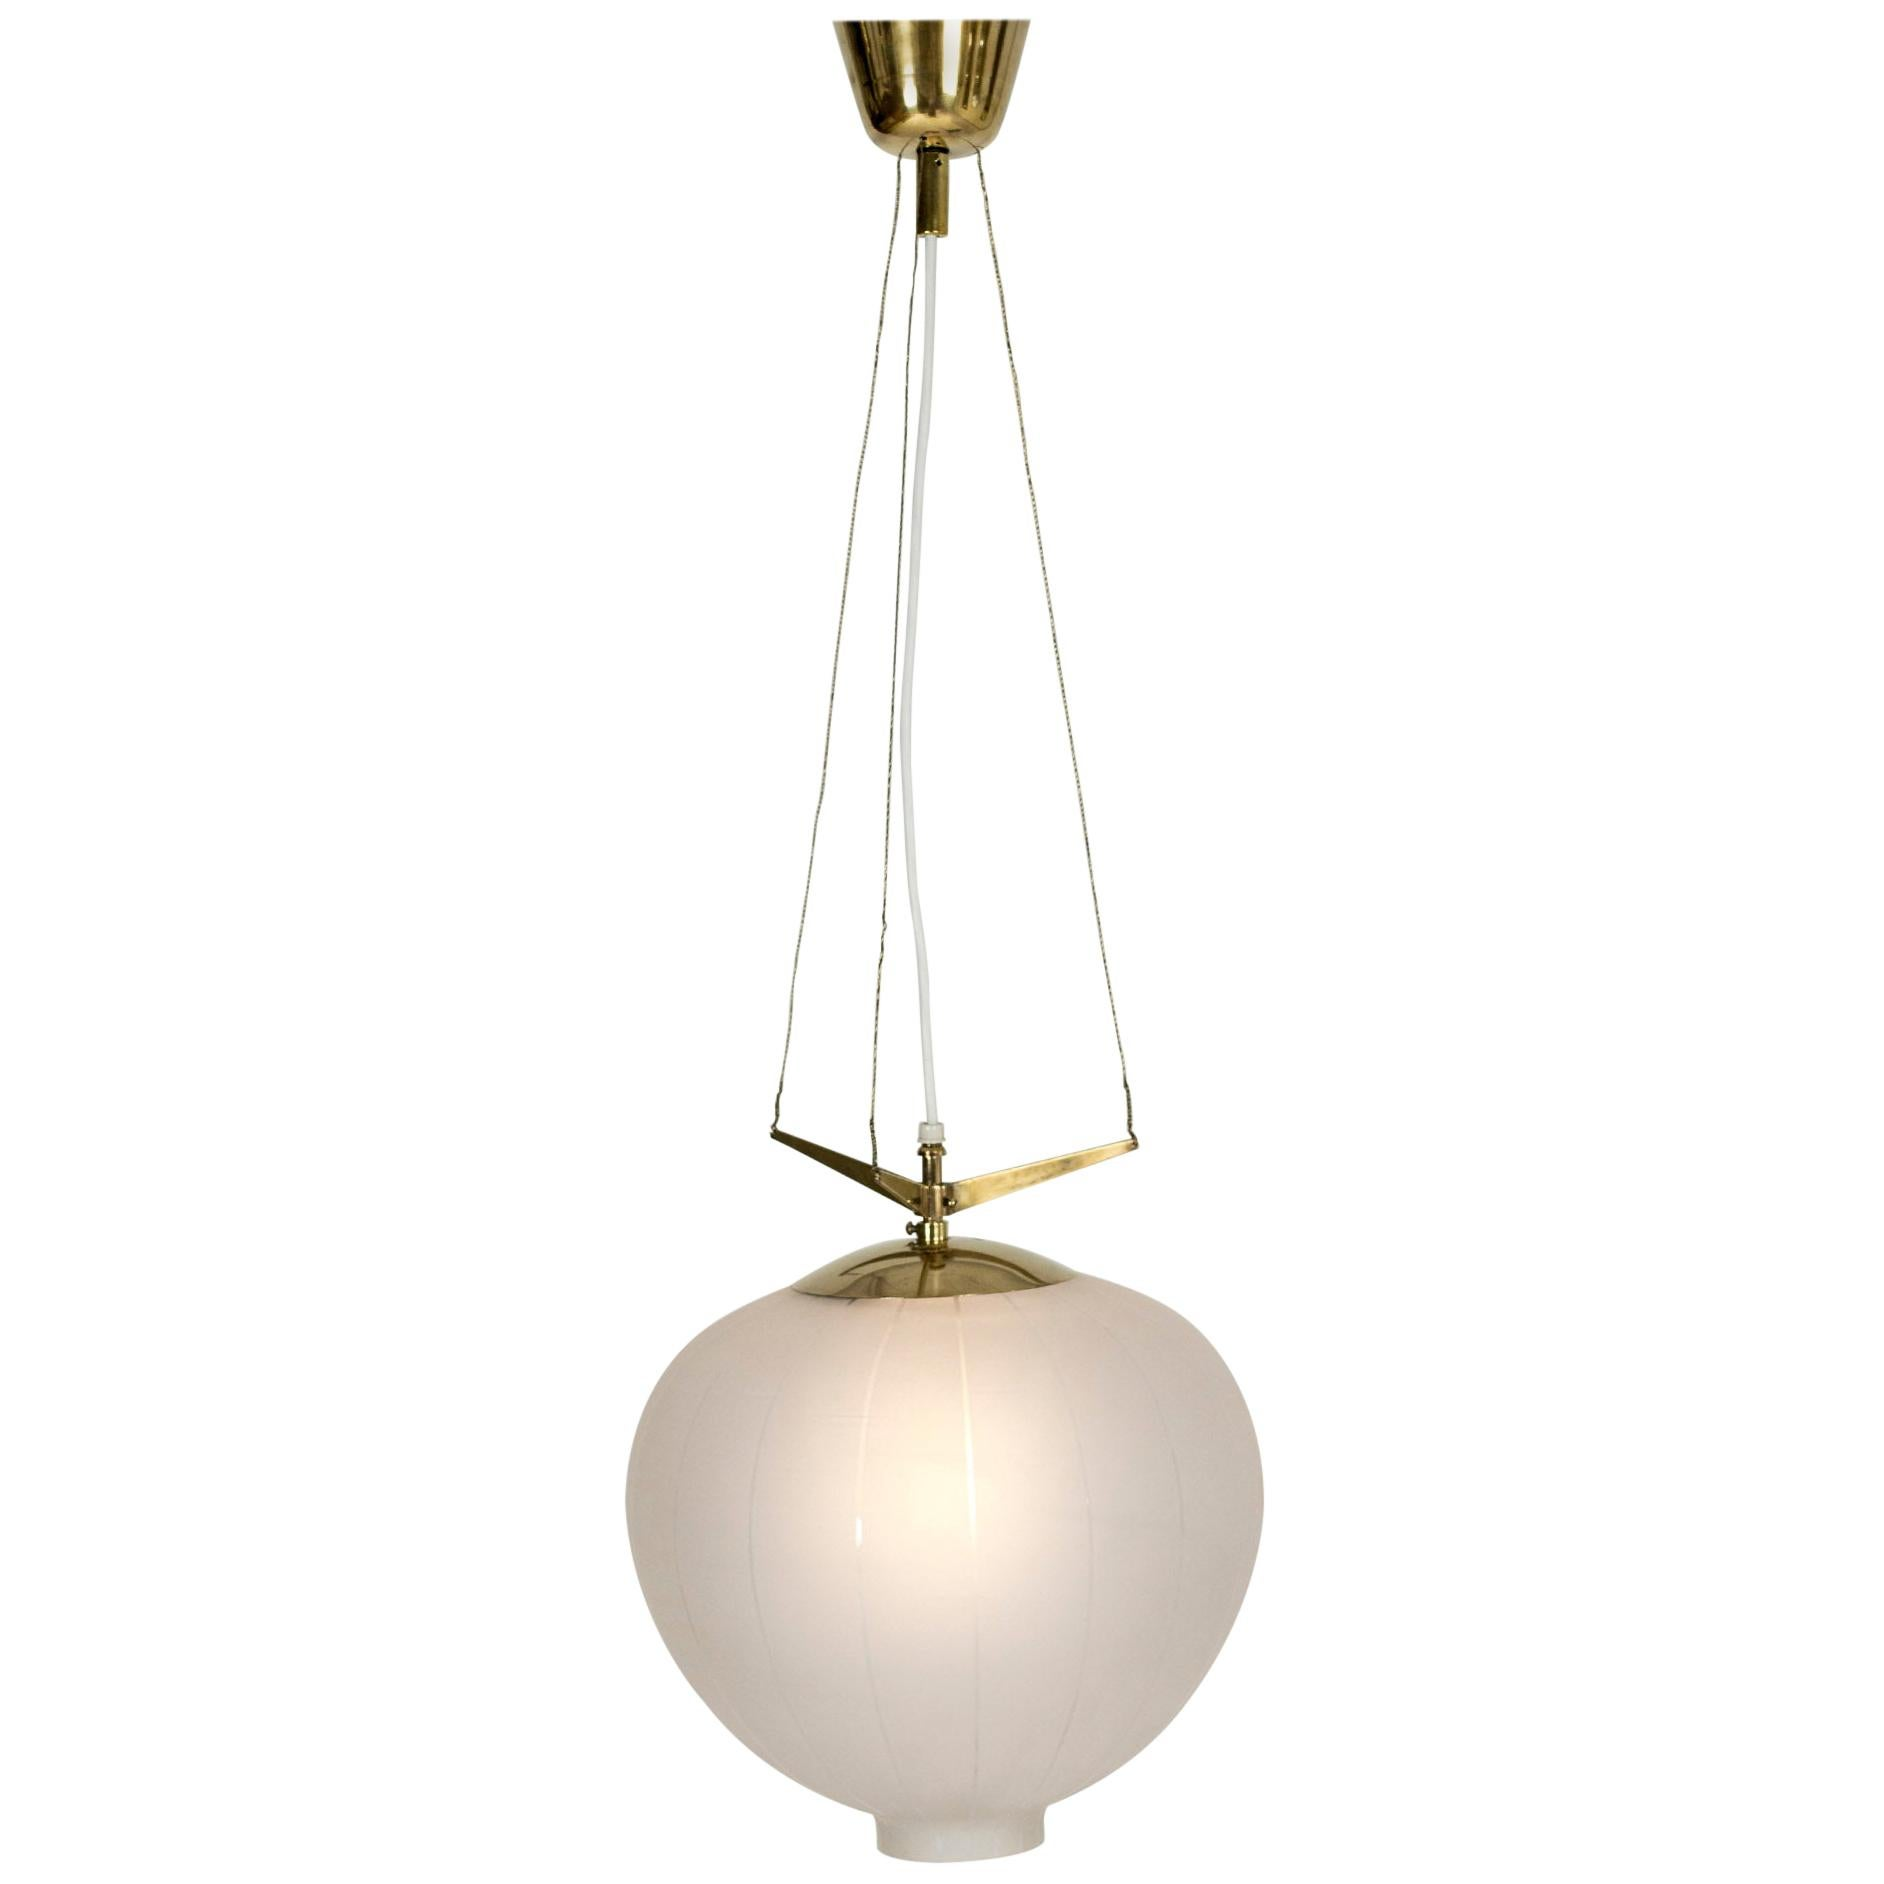 Swedish Midcentury Opaline Glass Ceiling Lamp